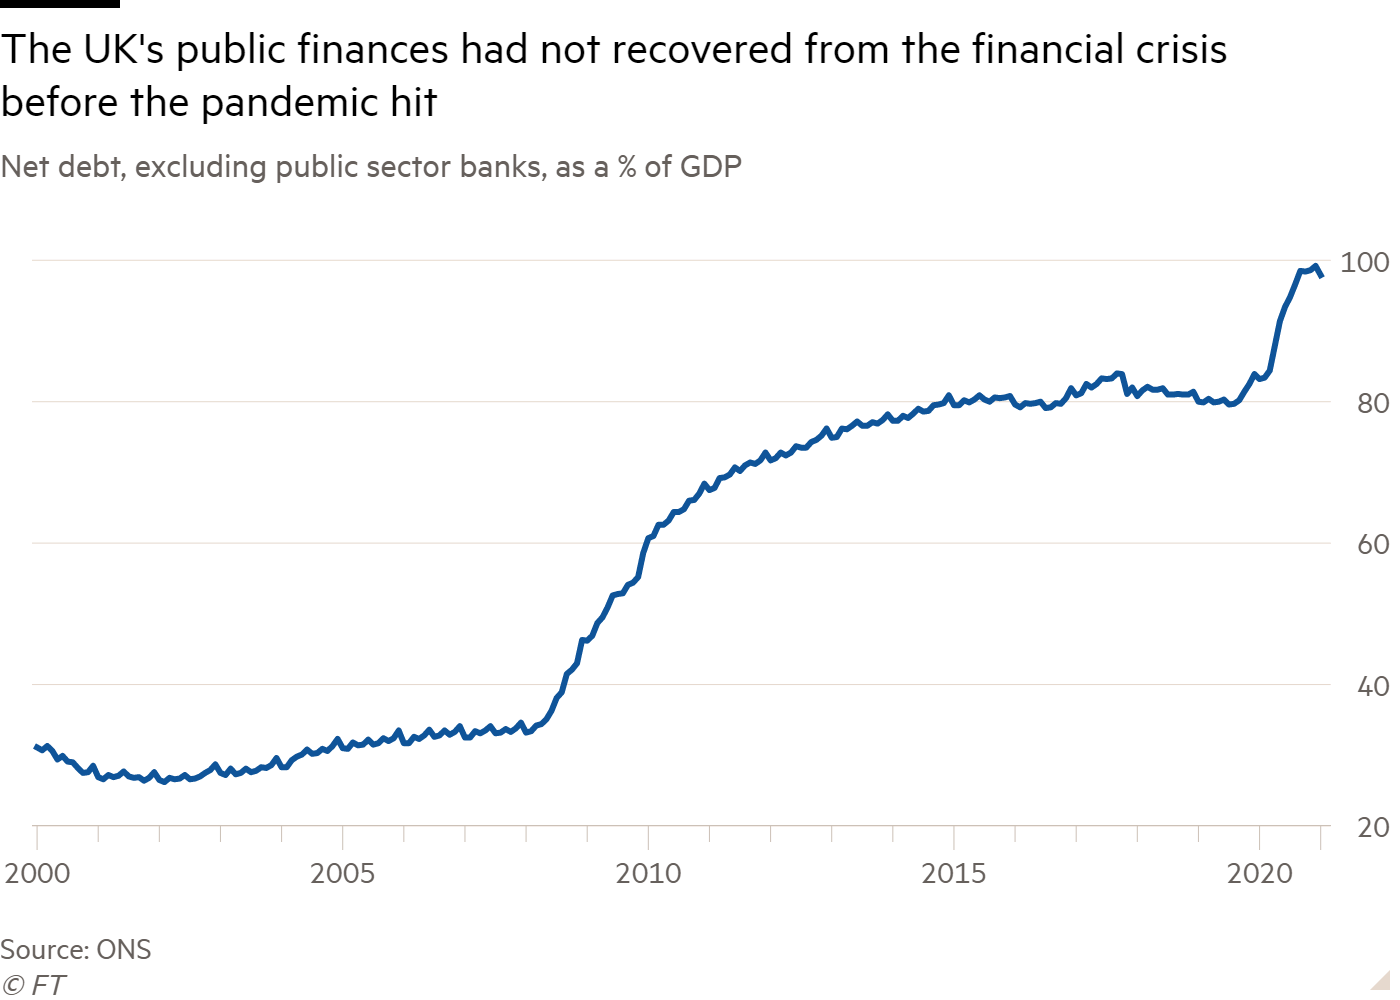 Line chart of Net debt, excluding public sector banks, as a % of GDP showing The UK's public finances had not recovered from the financial crisis before the pandemic hit